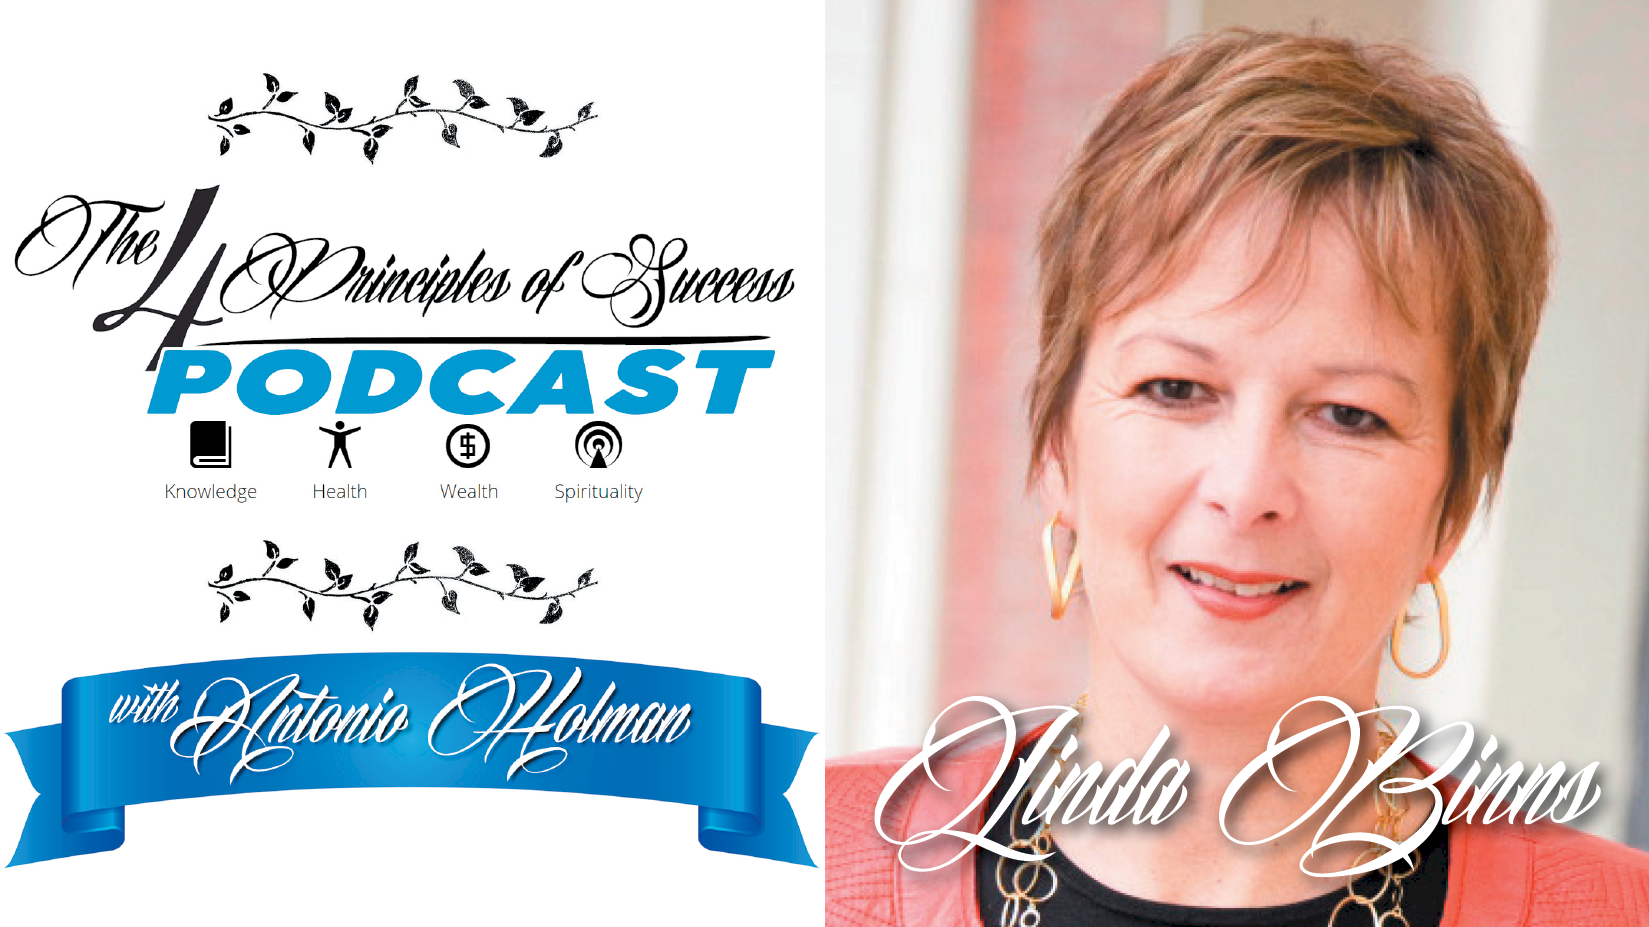 The 4 Principles of Success guest Linda Binns